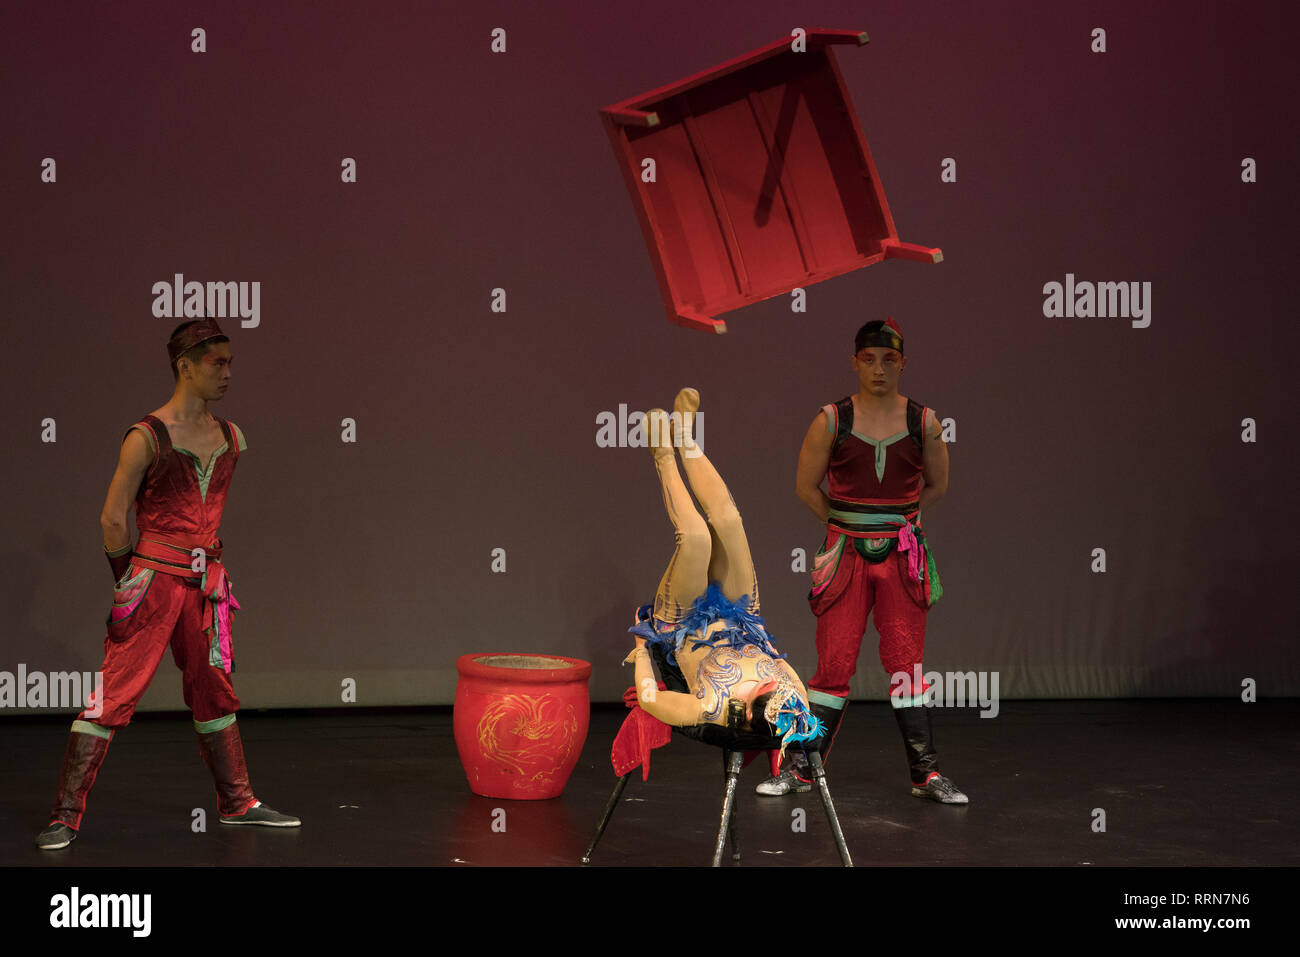 Acrobats from the New Shanghai Circus performed astonishing feats of precision, strength and balance. - Stock Image